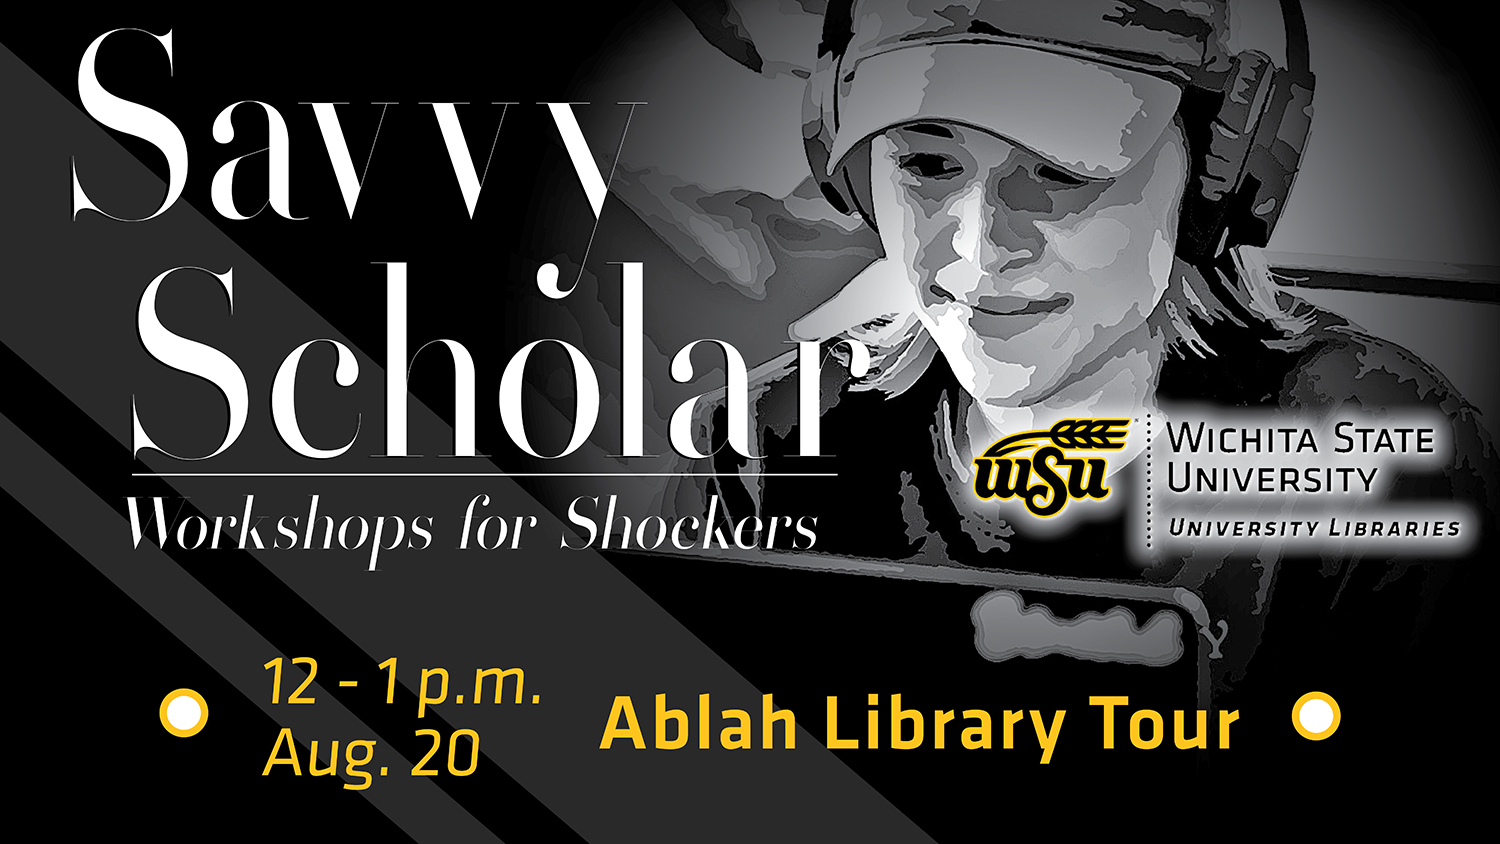 Savvy Scholar - Workshops for Shockers. 12 -1 p.m. Friday, Aug. 20 - Library Tour.